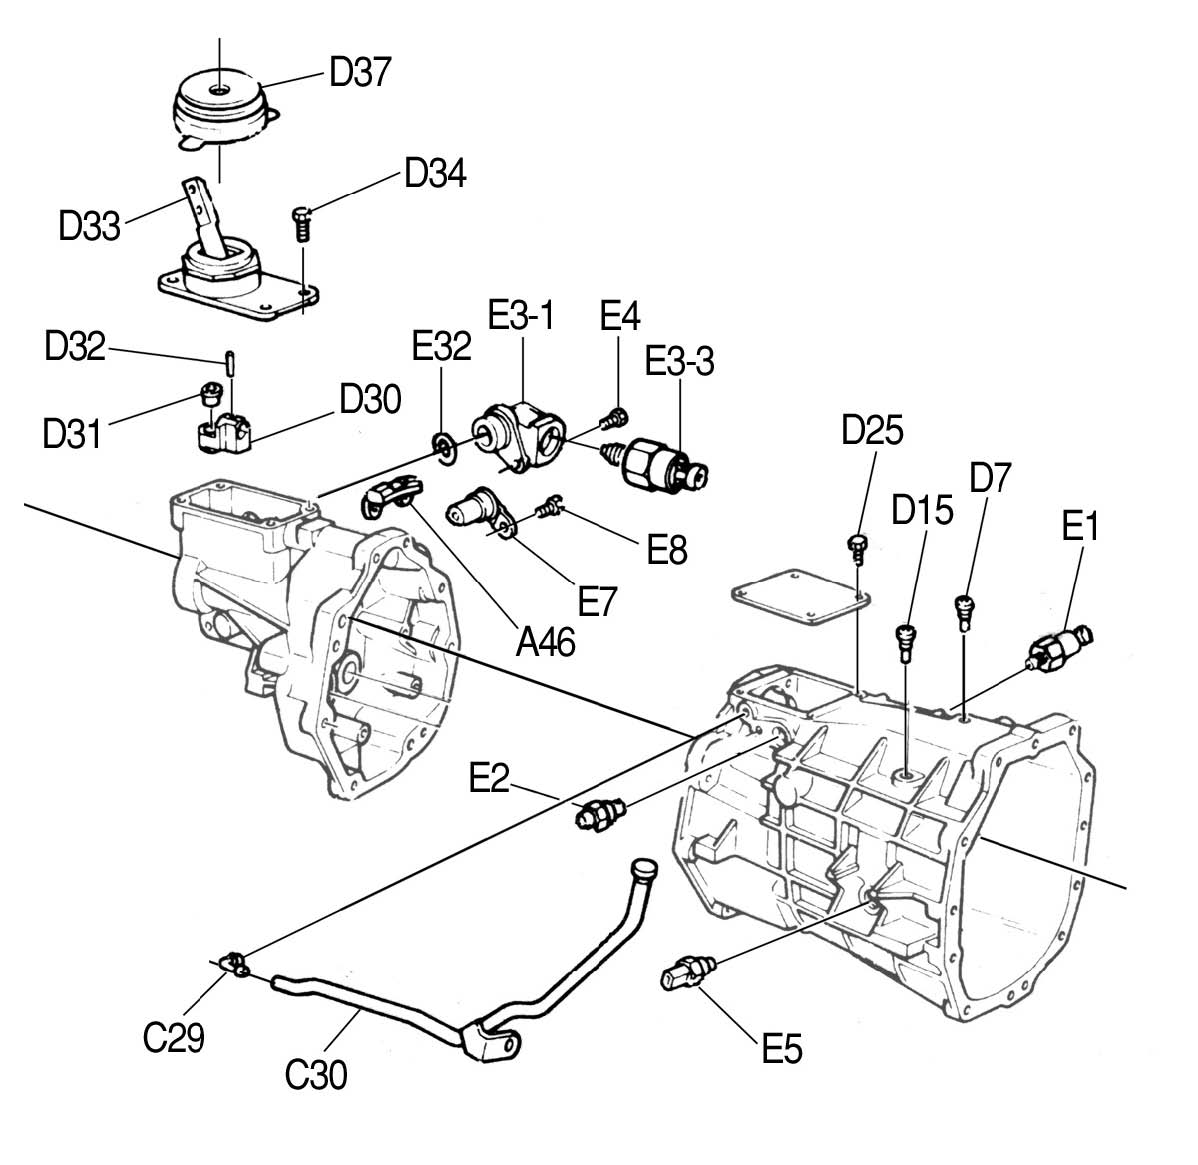 gm wiring diagrams for dummies chevy truck exhaust systems diagram 97 camaro t56 transmission sensor : 48 images - ...